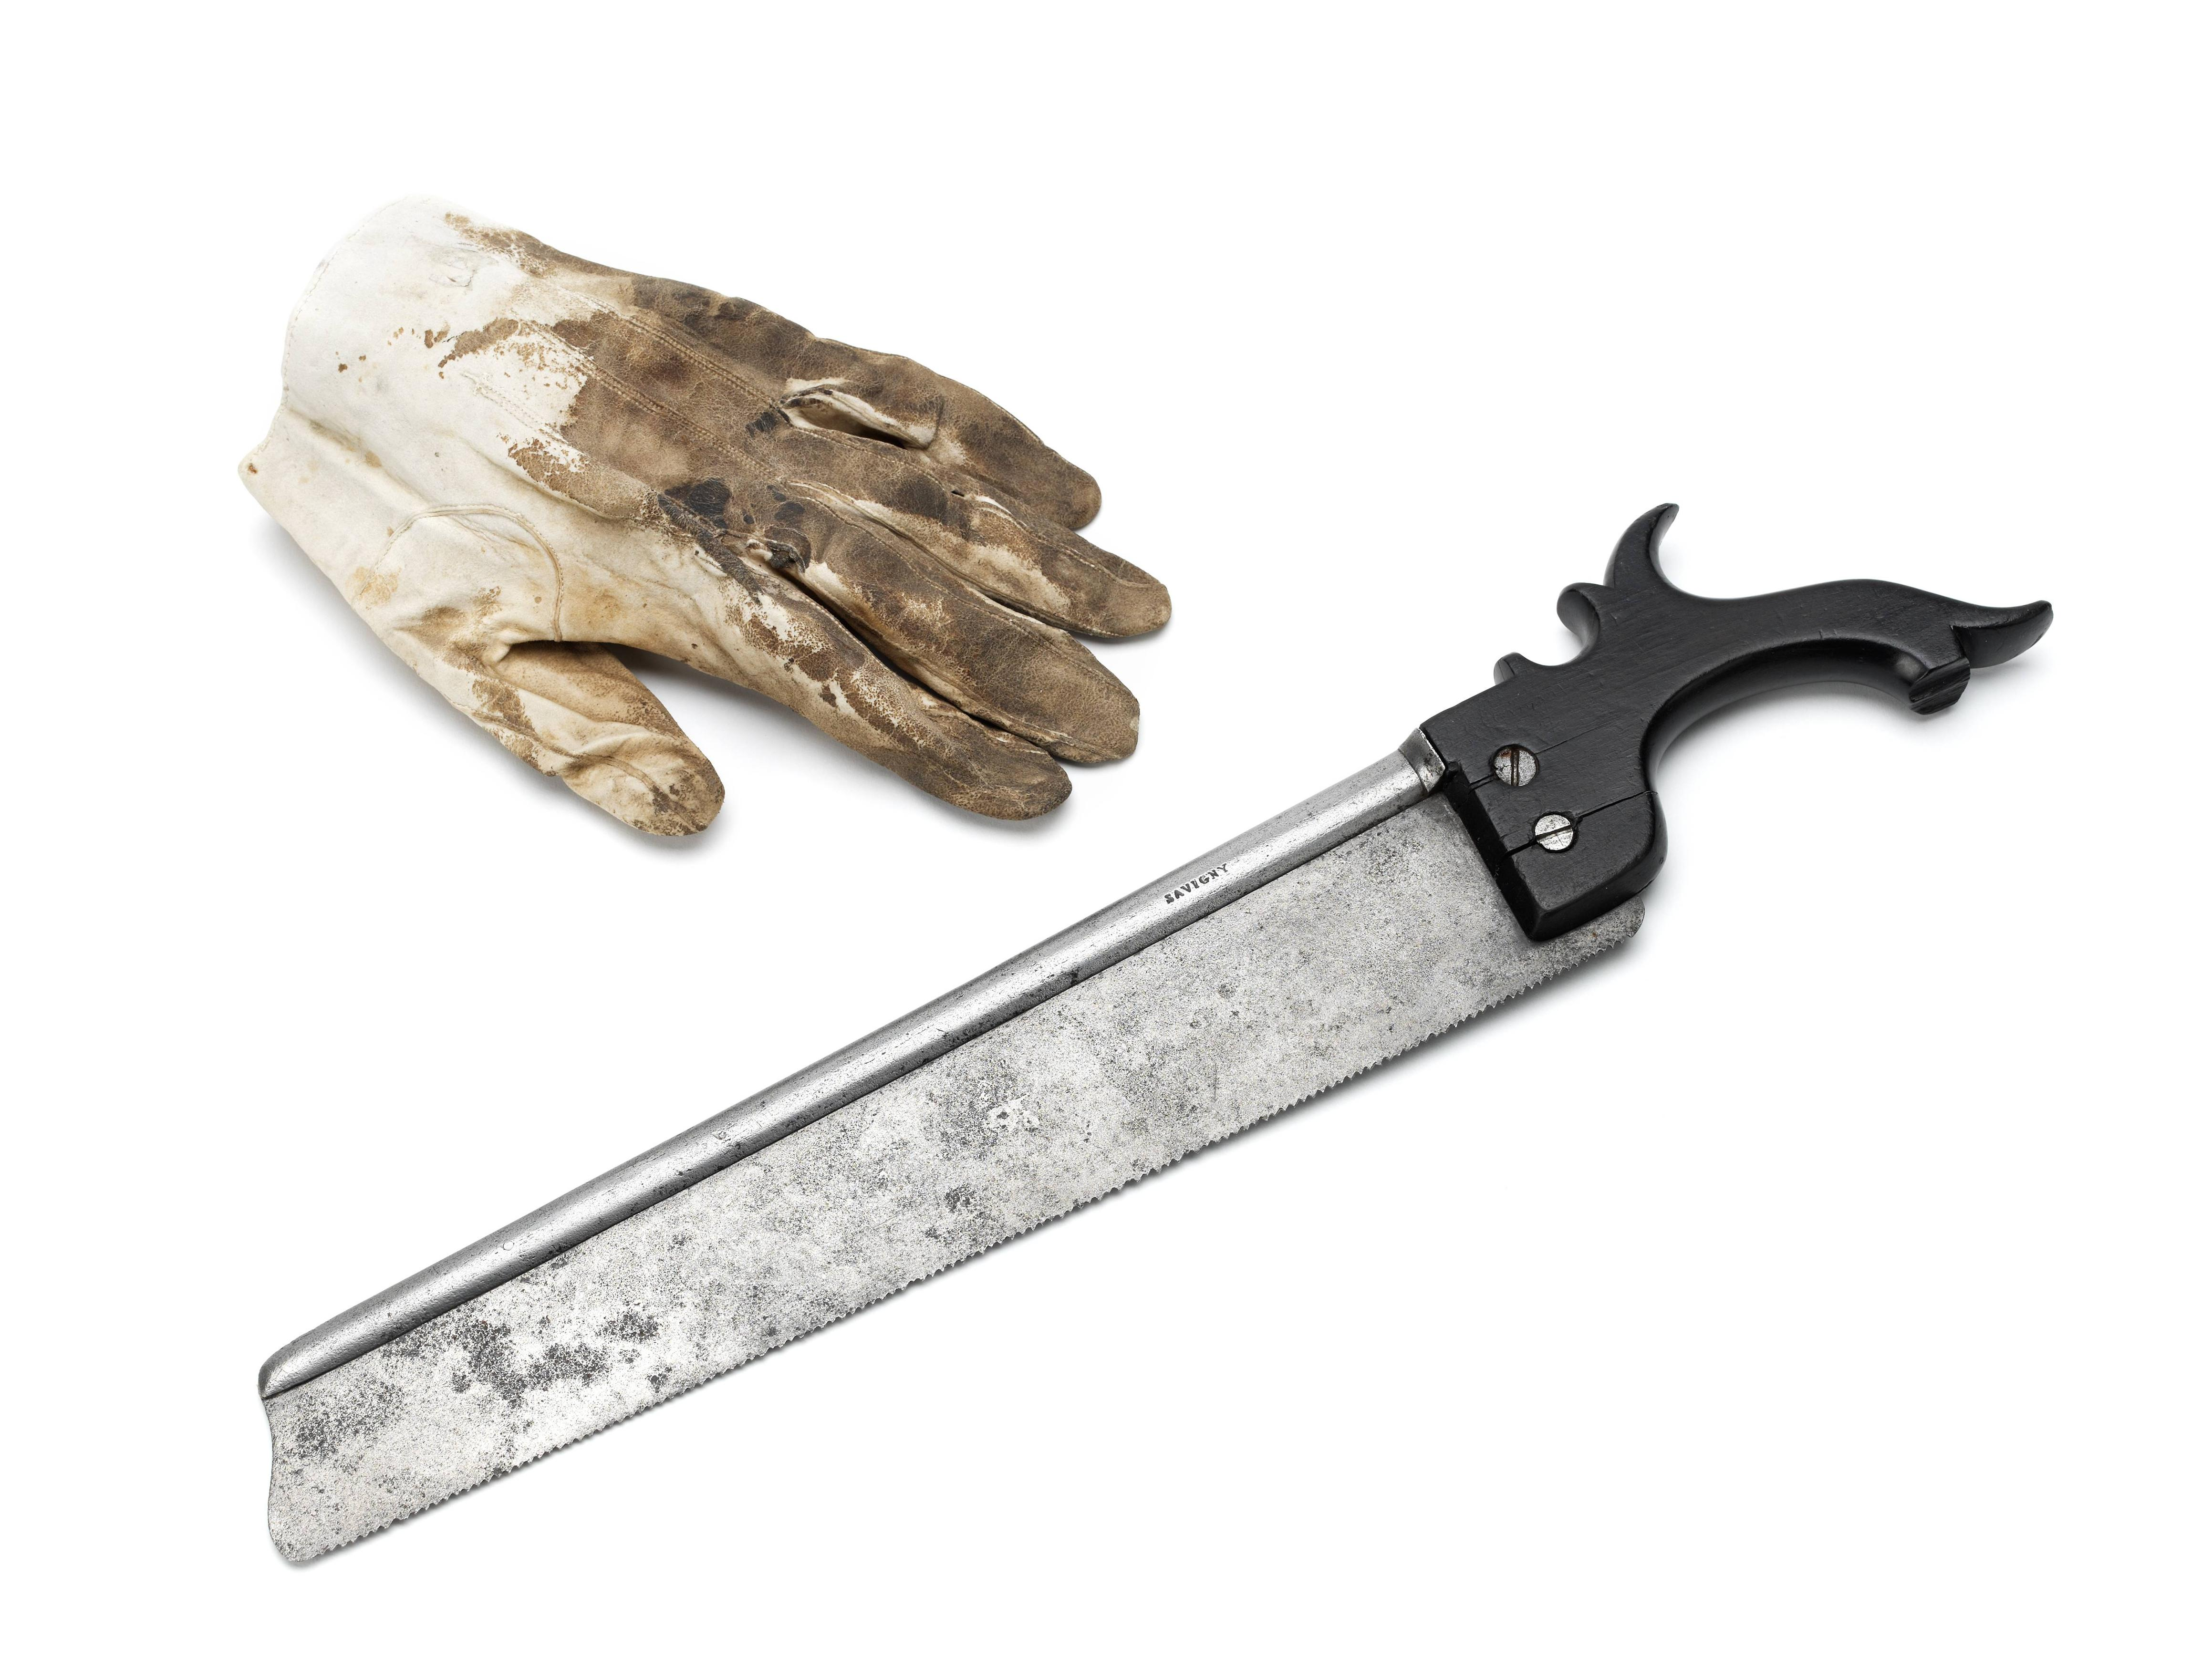 Saw and glove used to amputate Uxbridge's leg